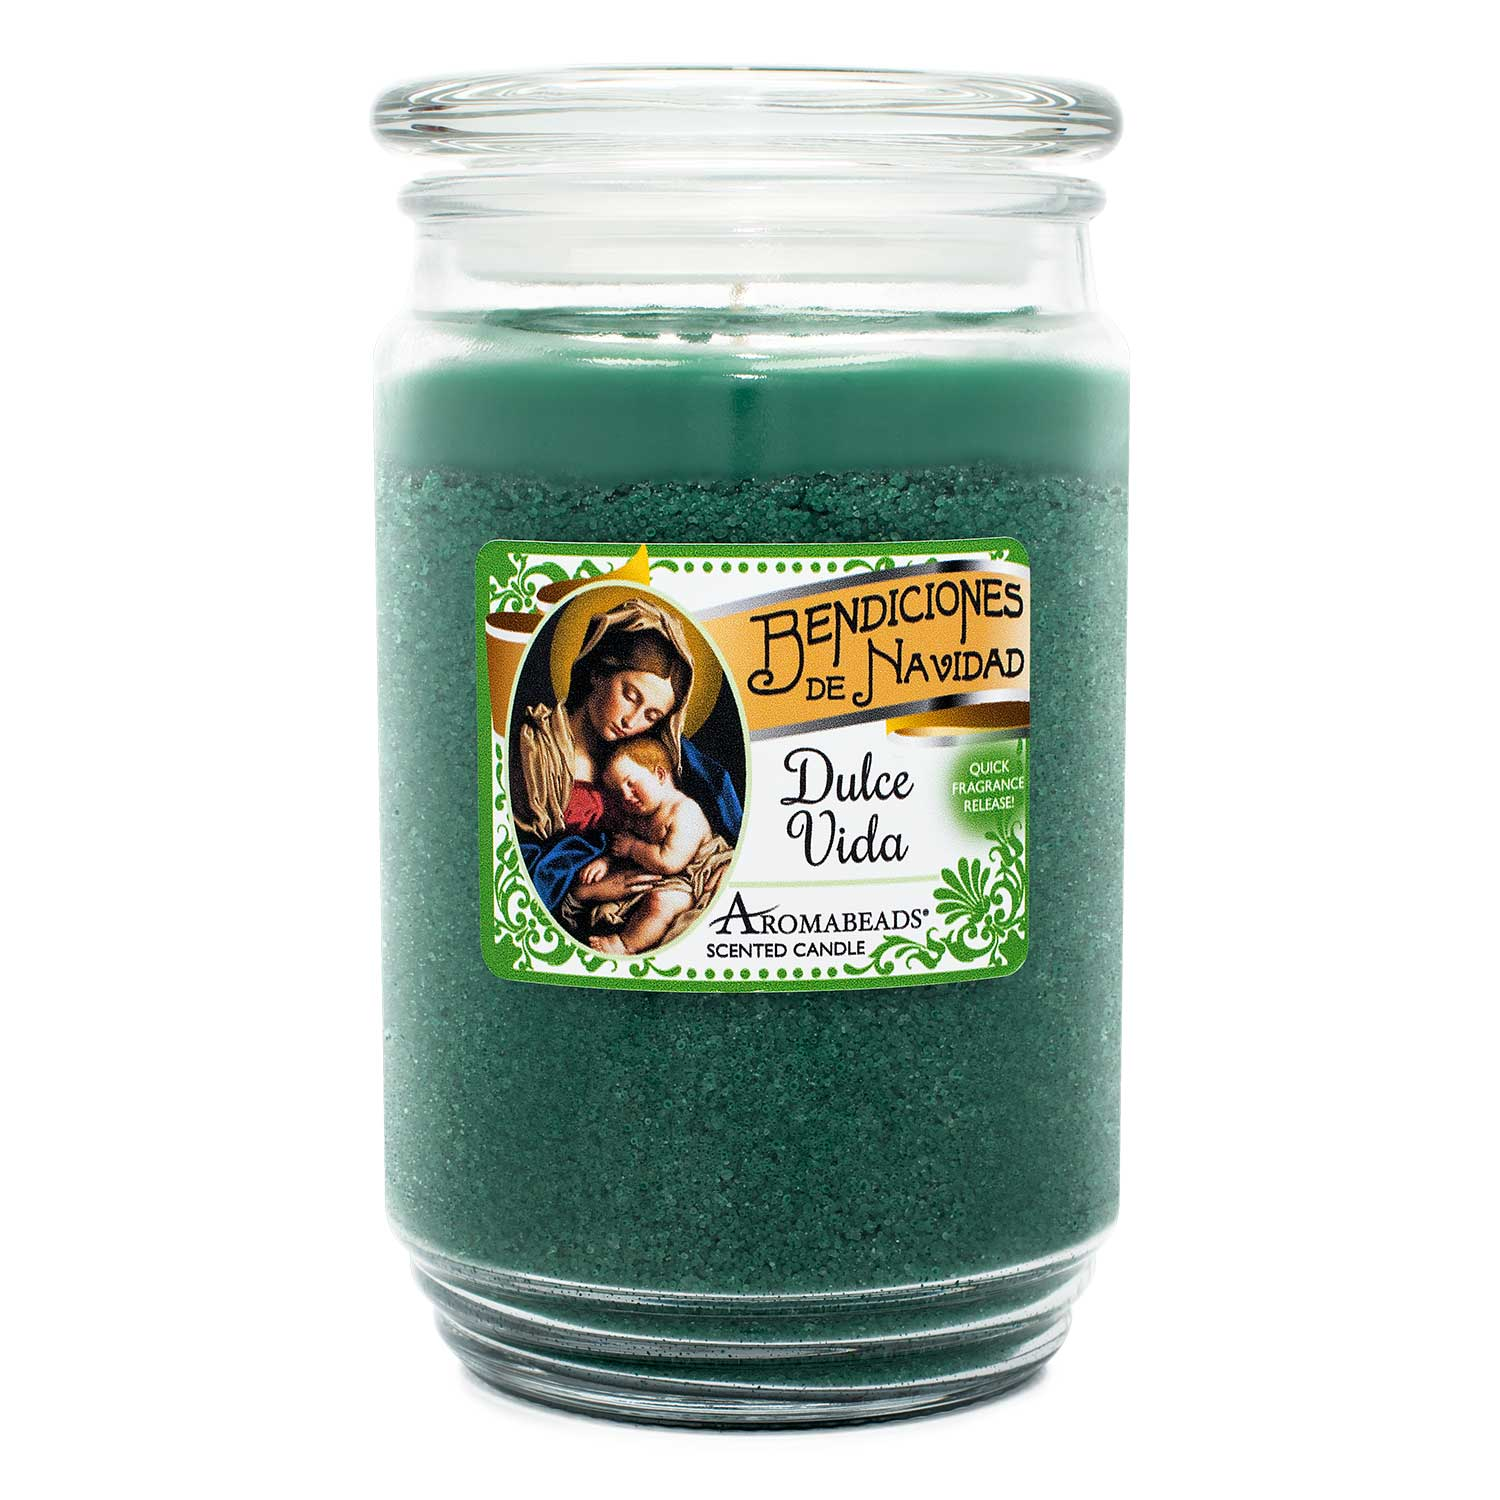 Aromabeads Dulce Vida Scented Candle